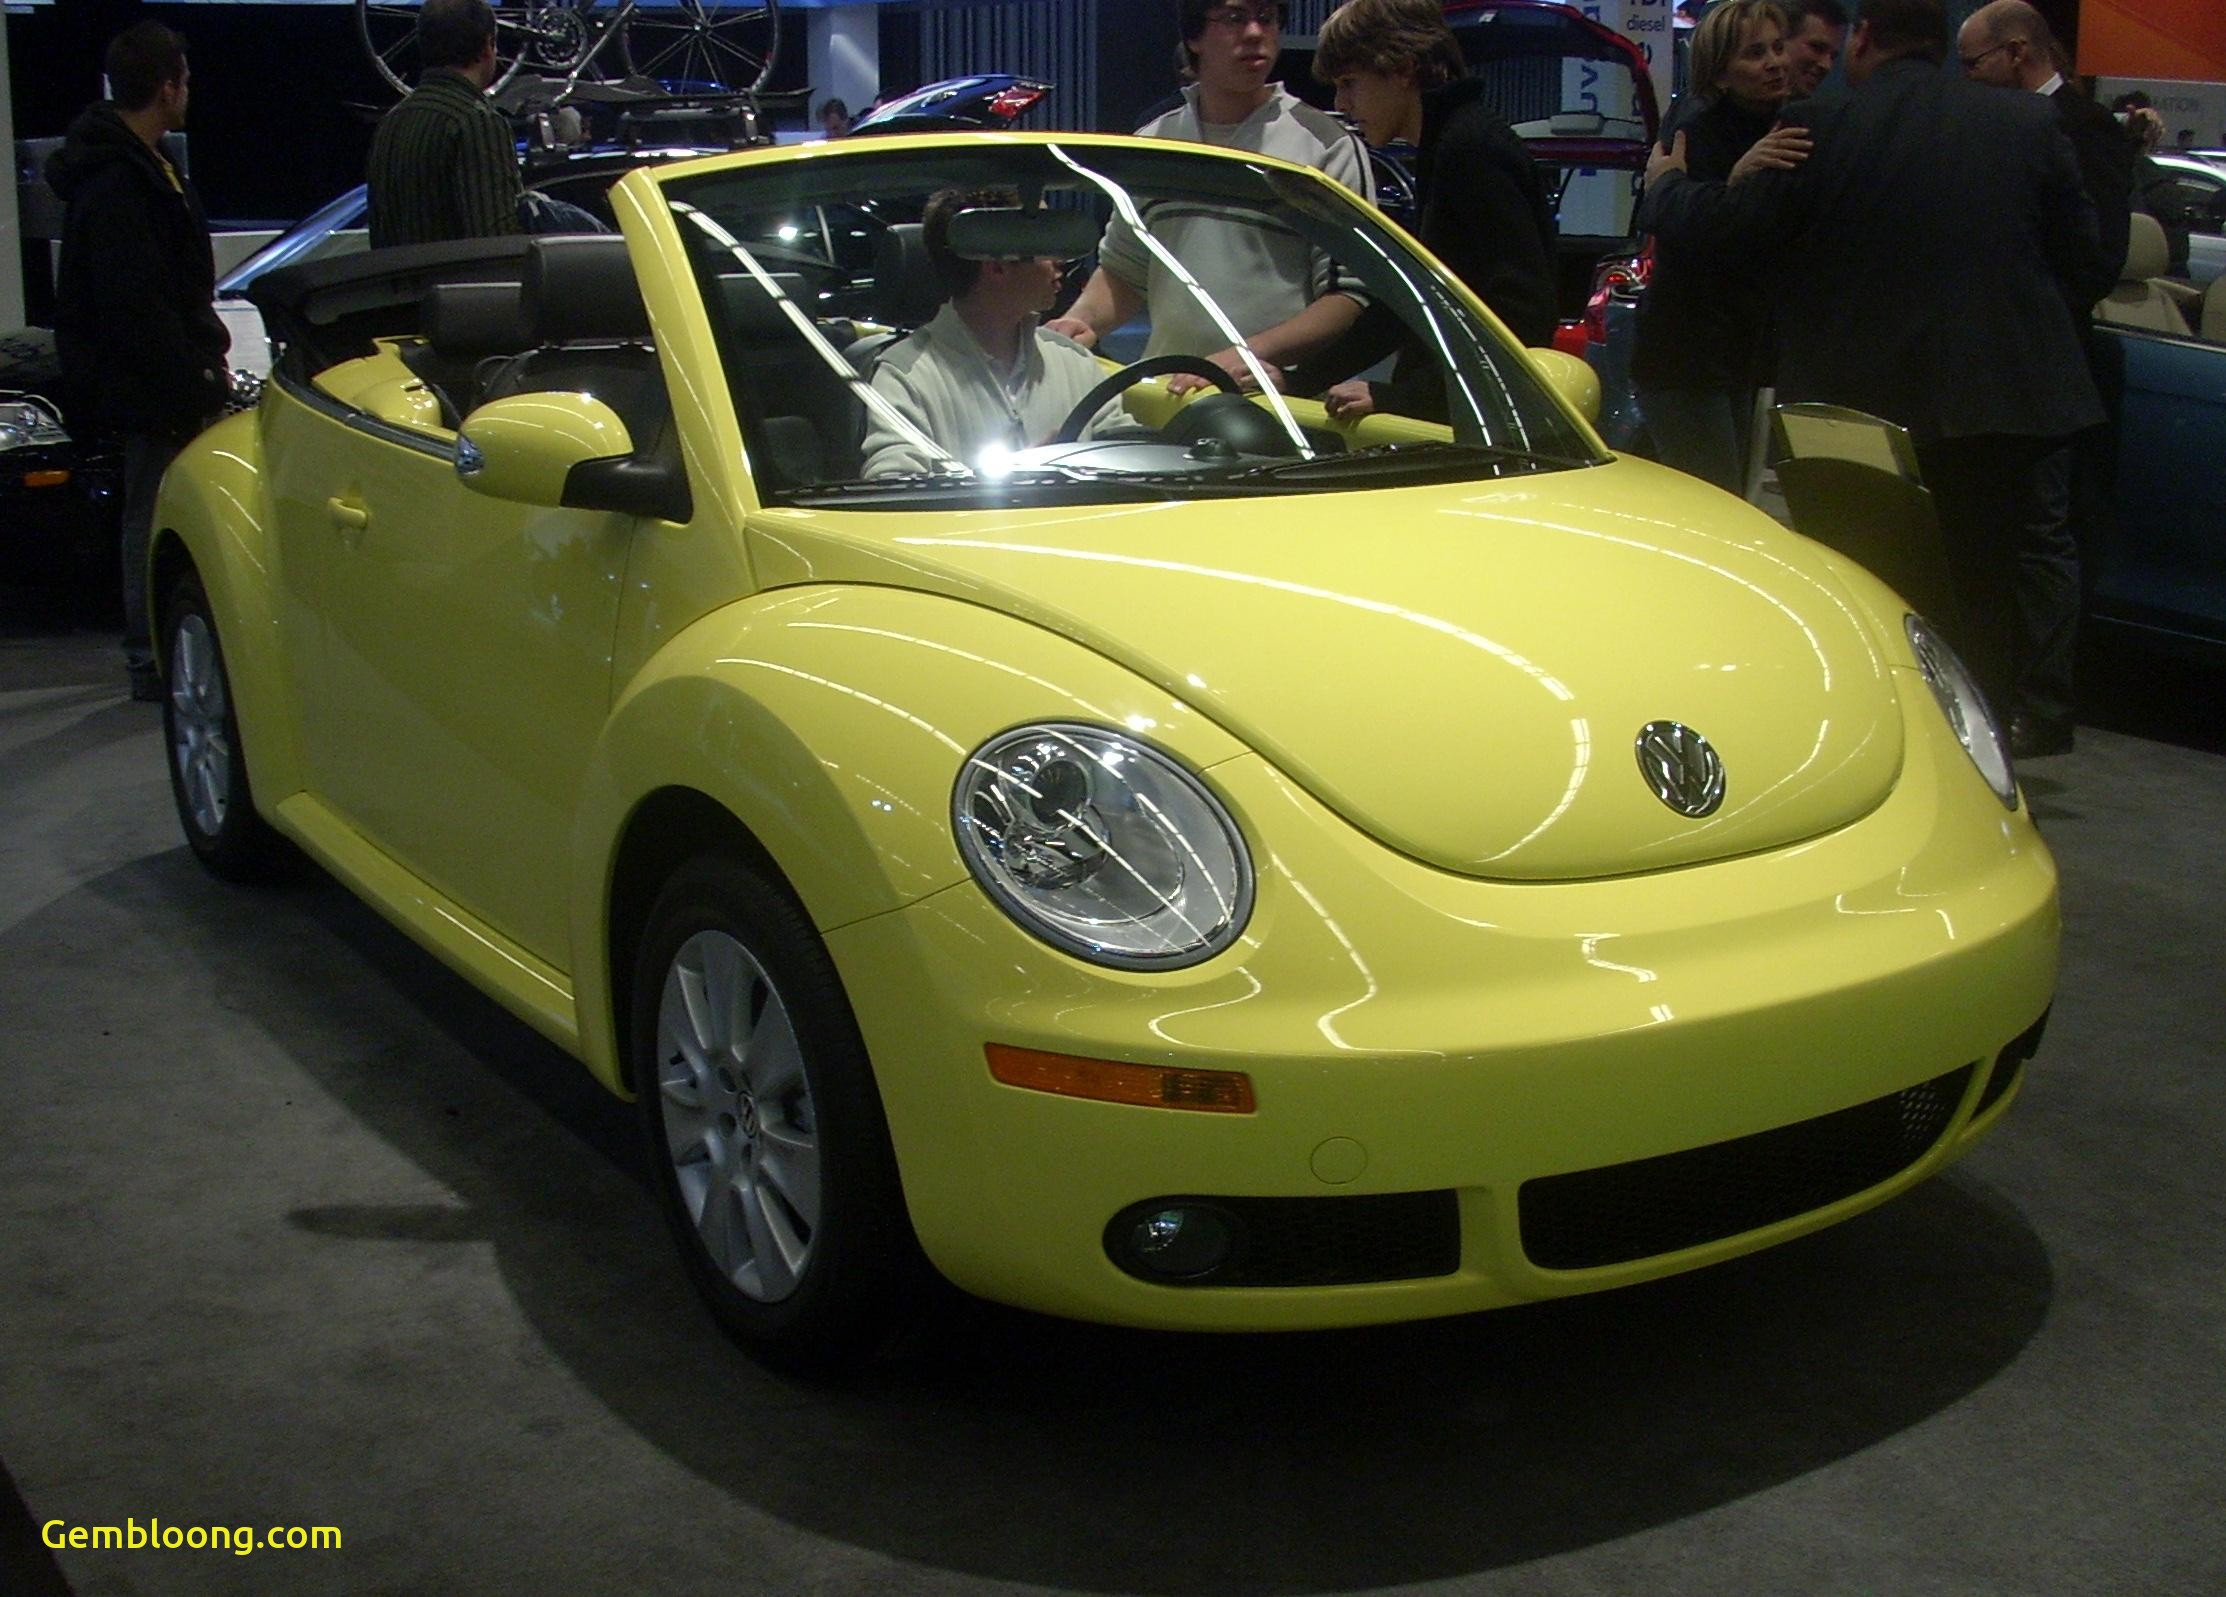 Vw Used Cars Best Of Volkswagen New Beetle Convertible Picture 9 Reviews